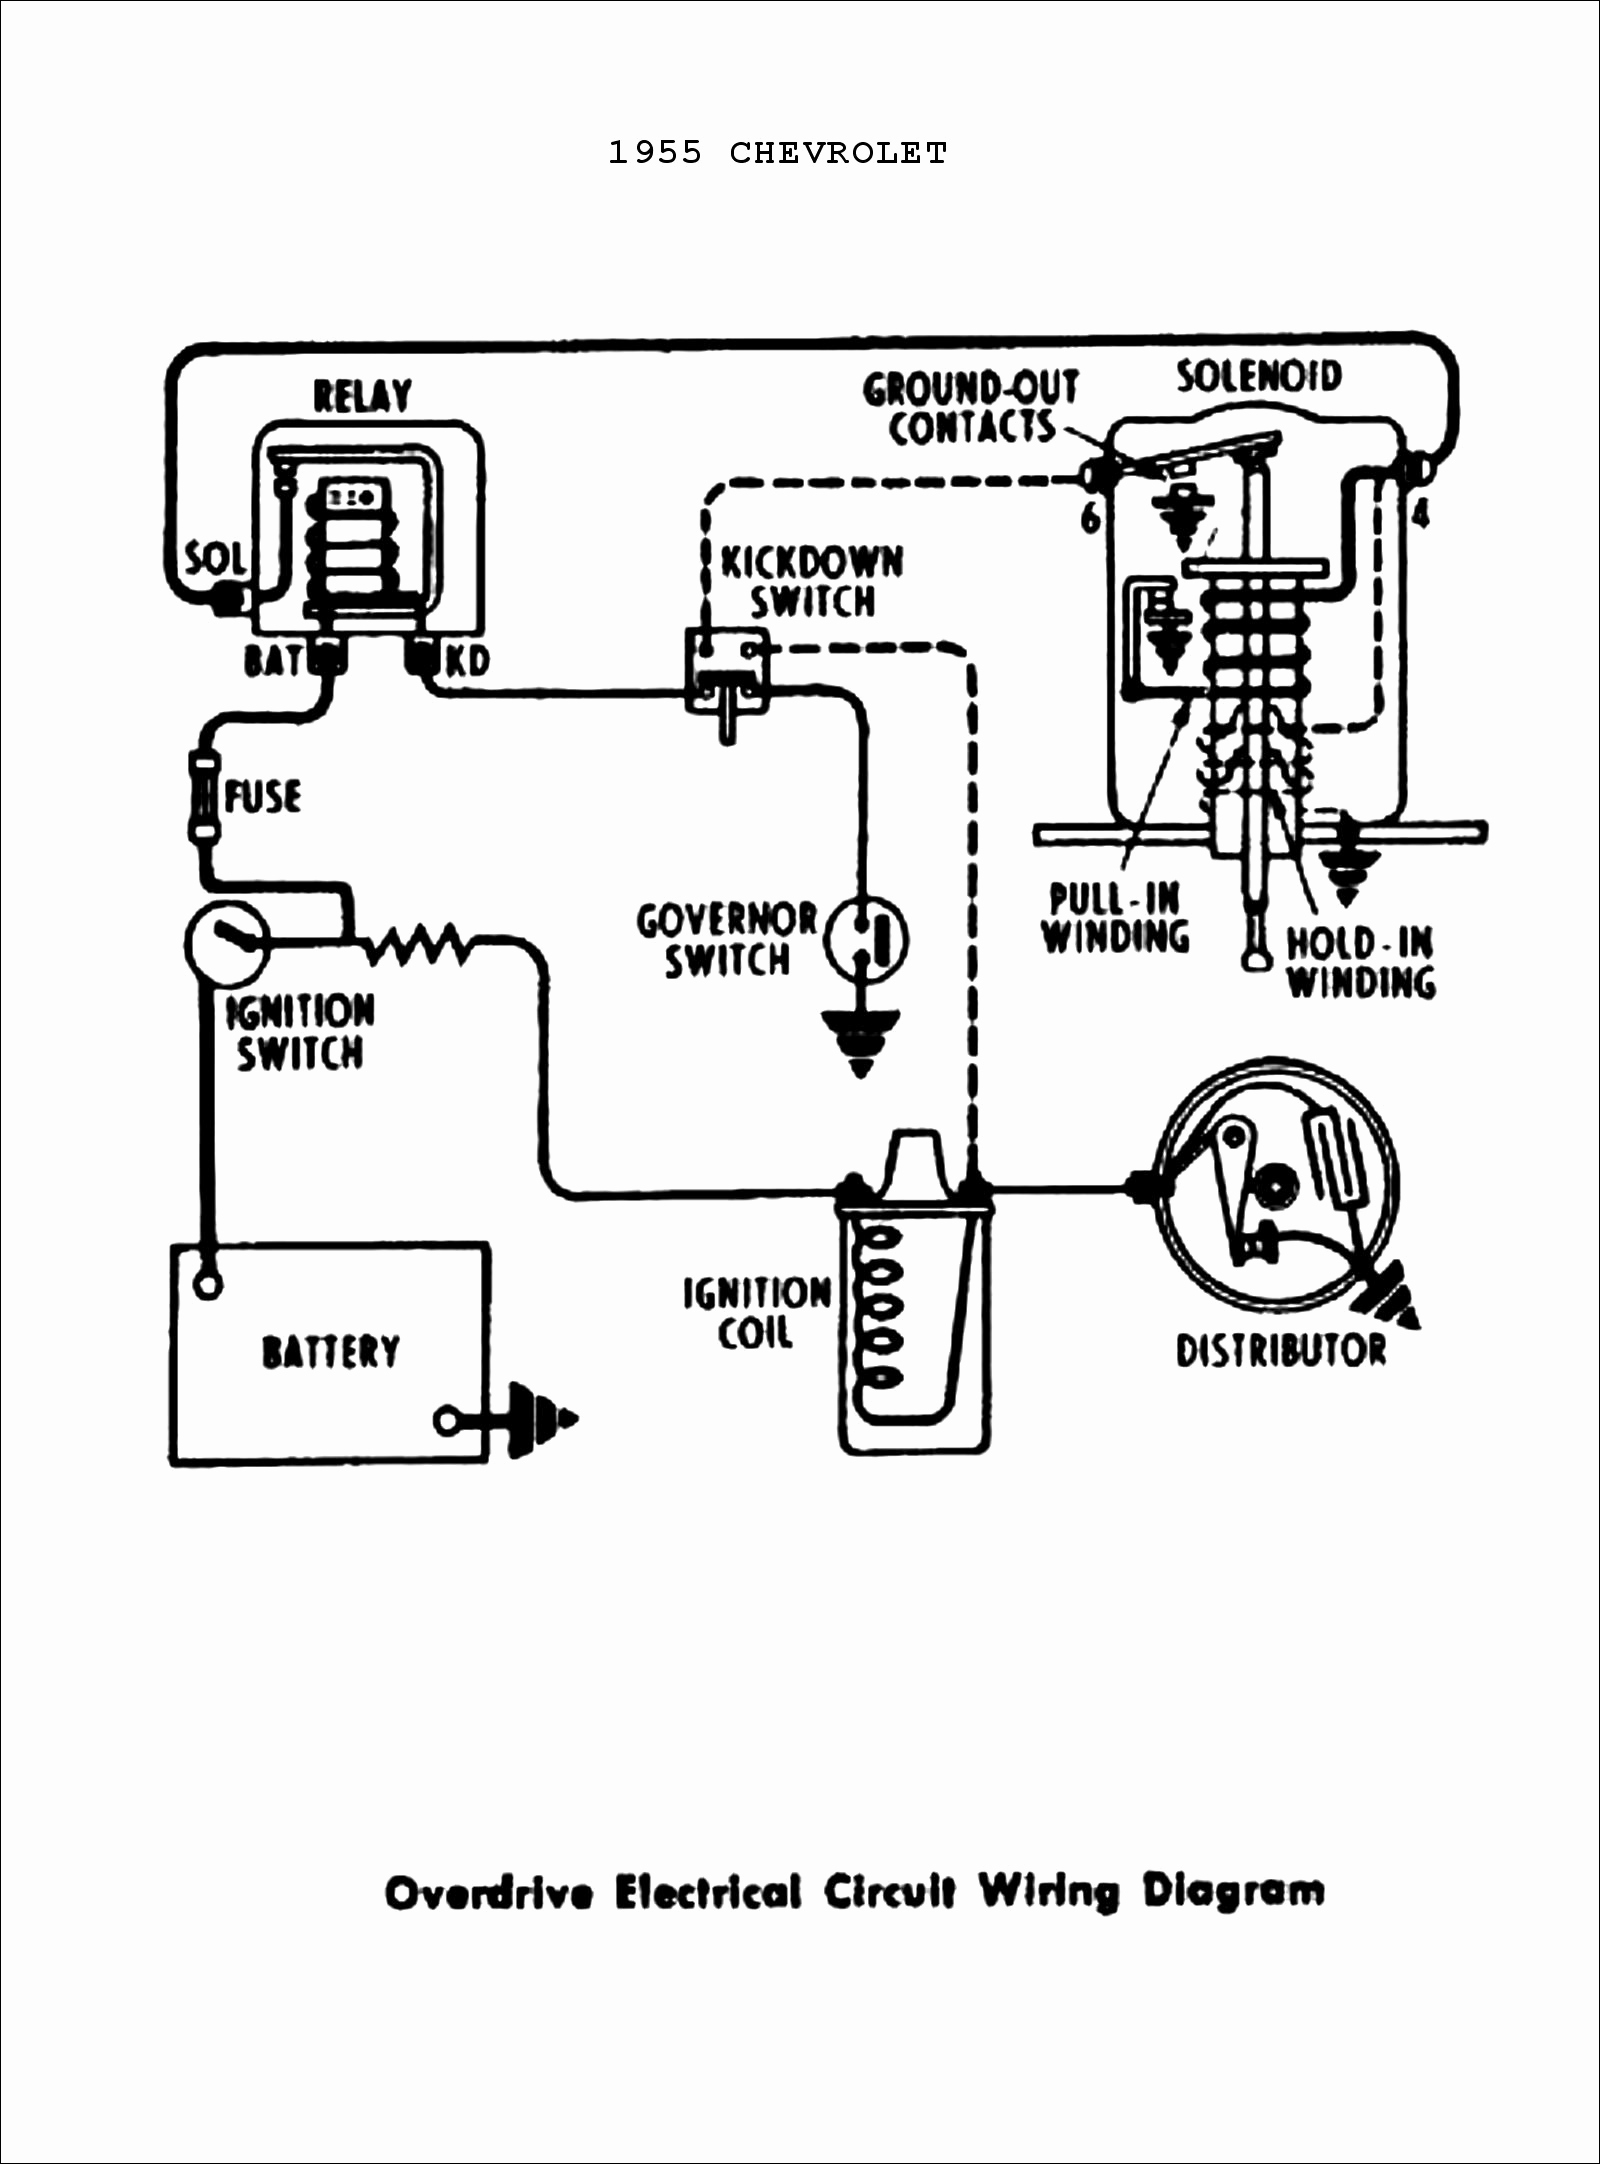 55 Chevy Wiring Schematic